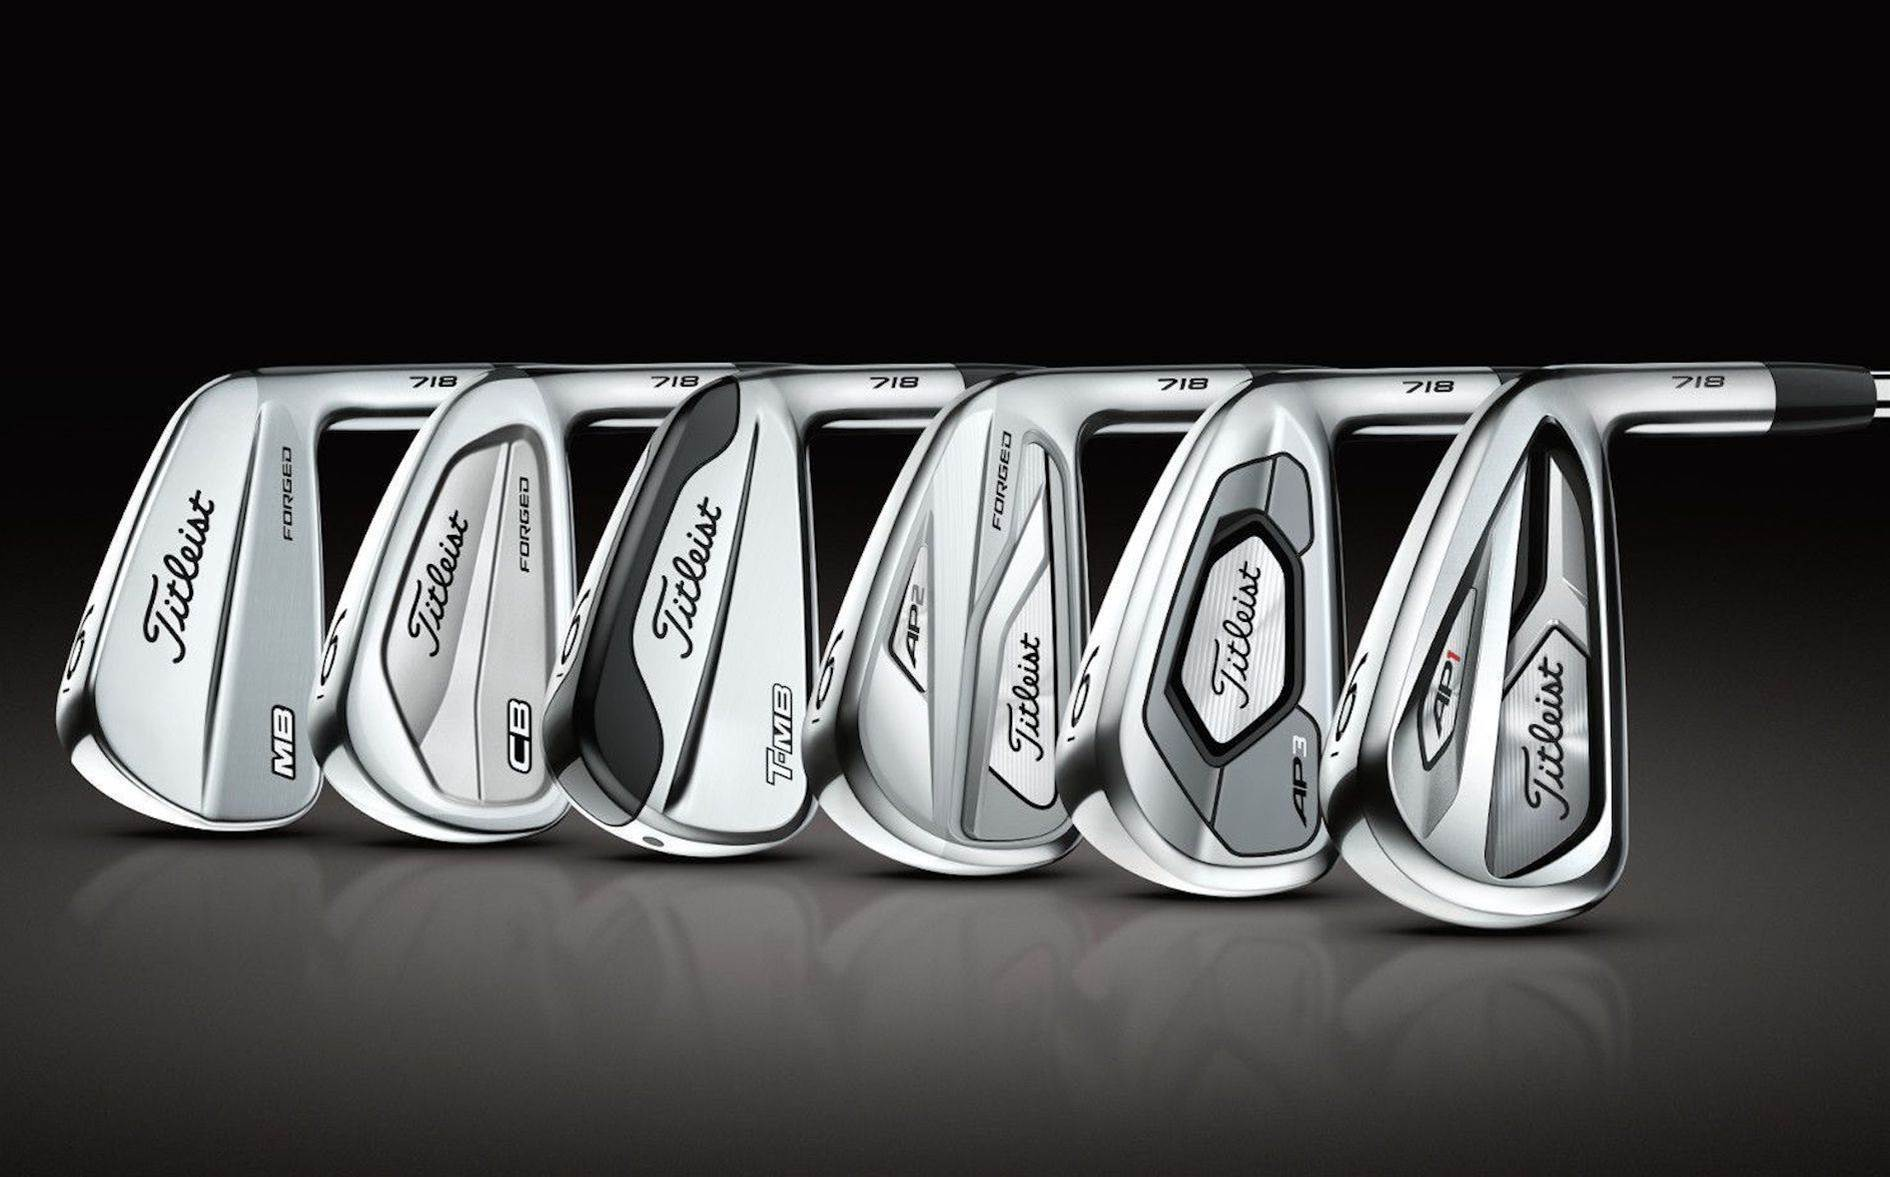 Titleist makes 718 irons official